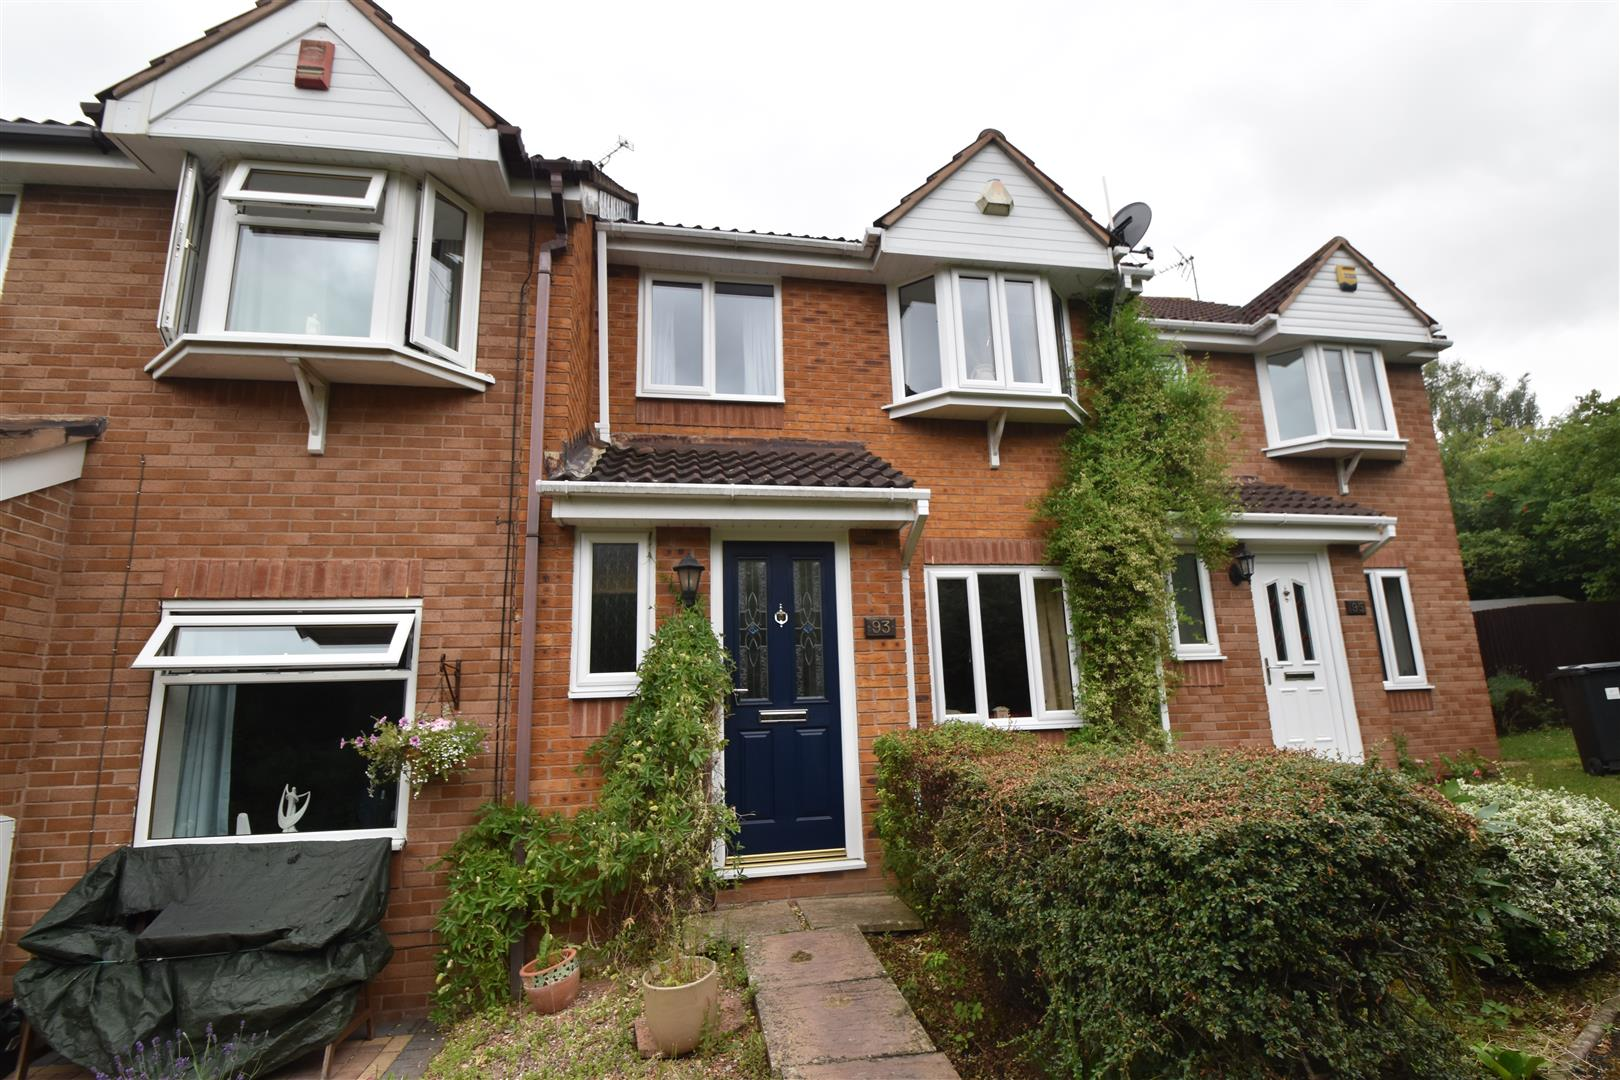 3 Bedrooms Terraced House for sale in Toftdale Green, Lyppard Bourne, Worcester